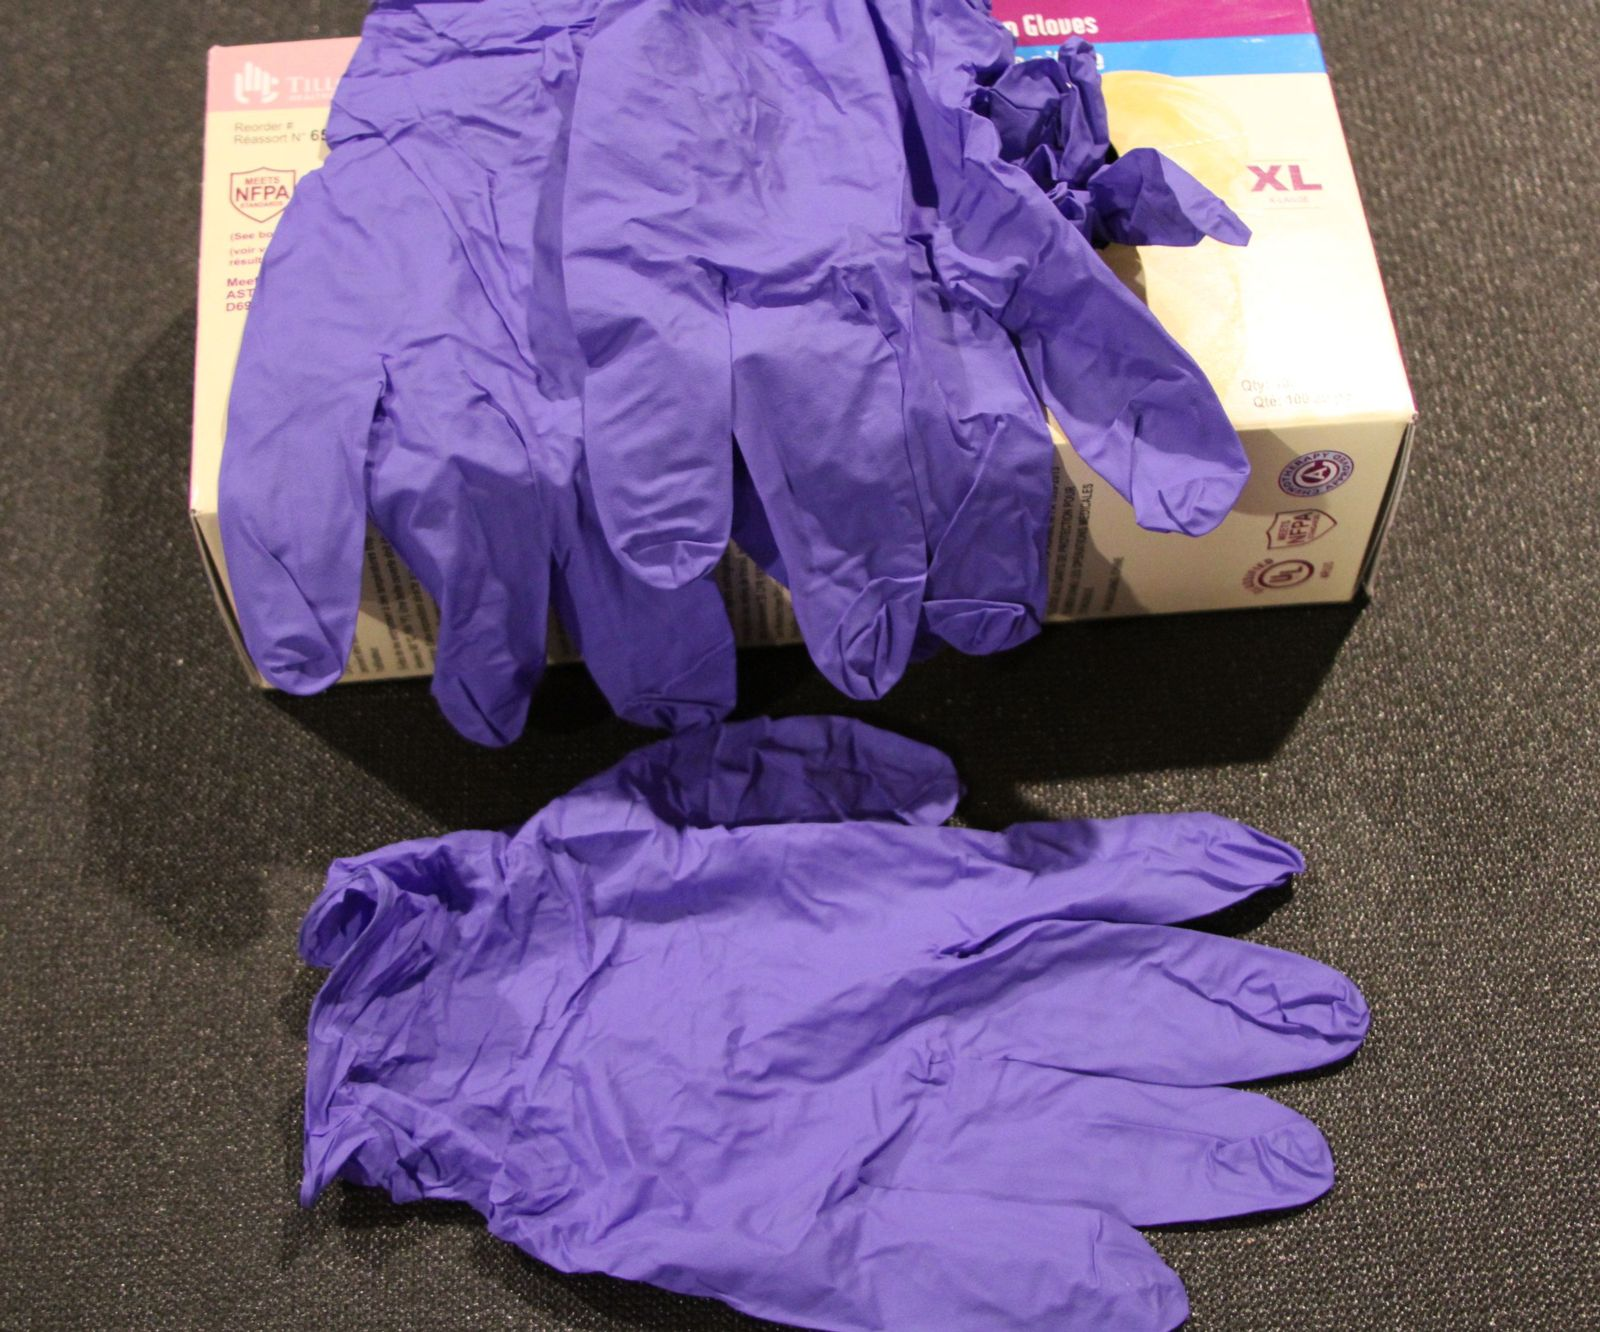 Nitrile gloves.